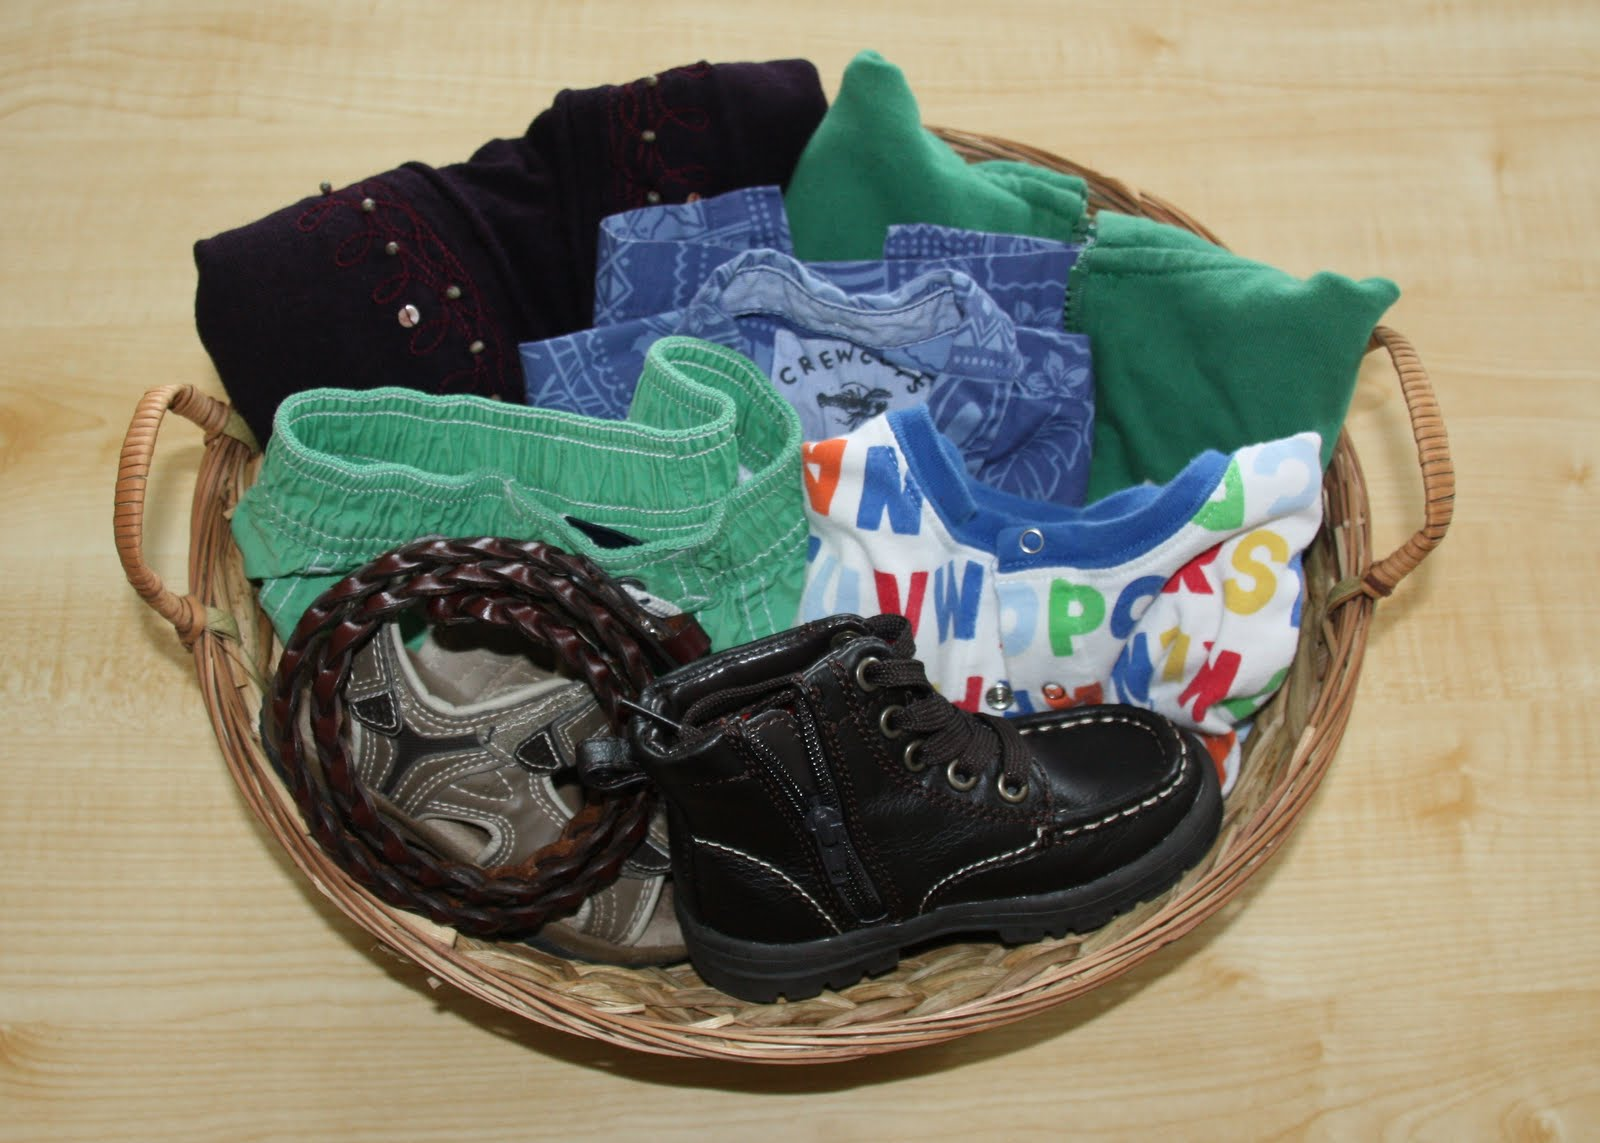 Dressing Basket (Photo from Counting Coconuts)